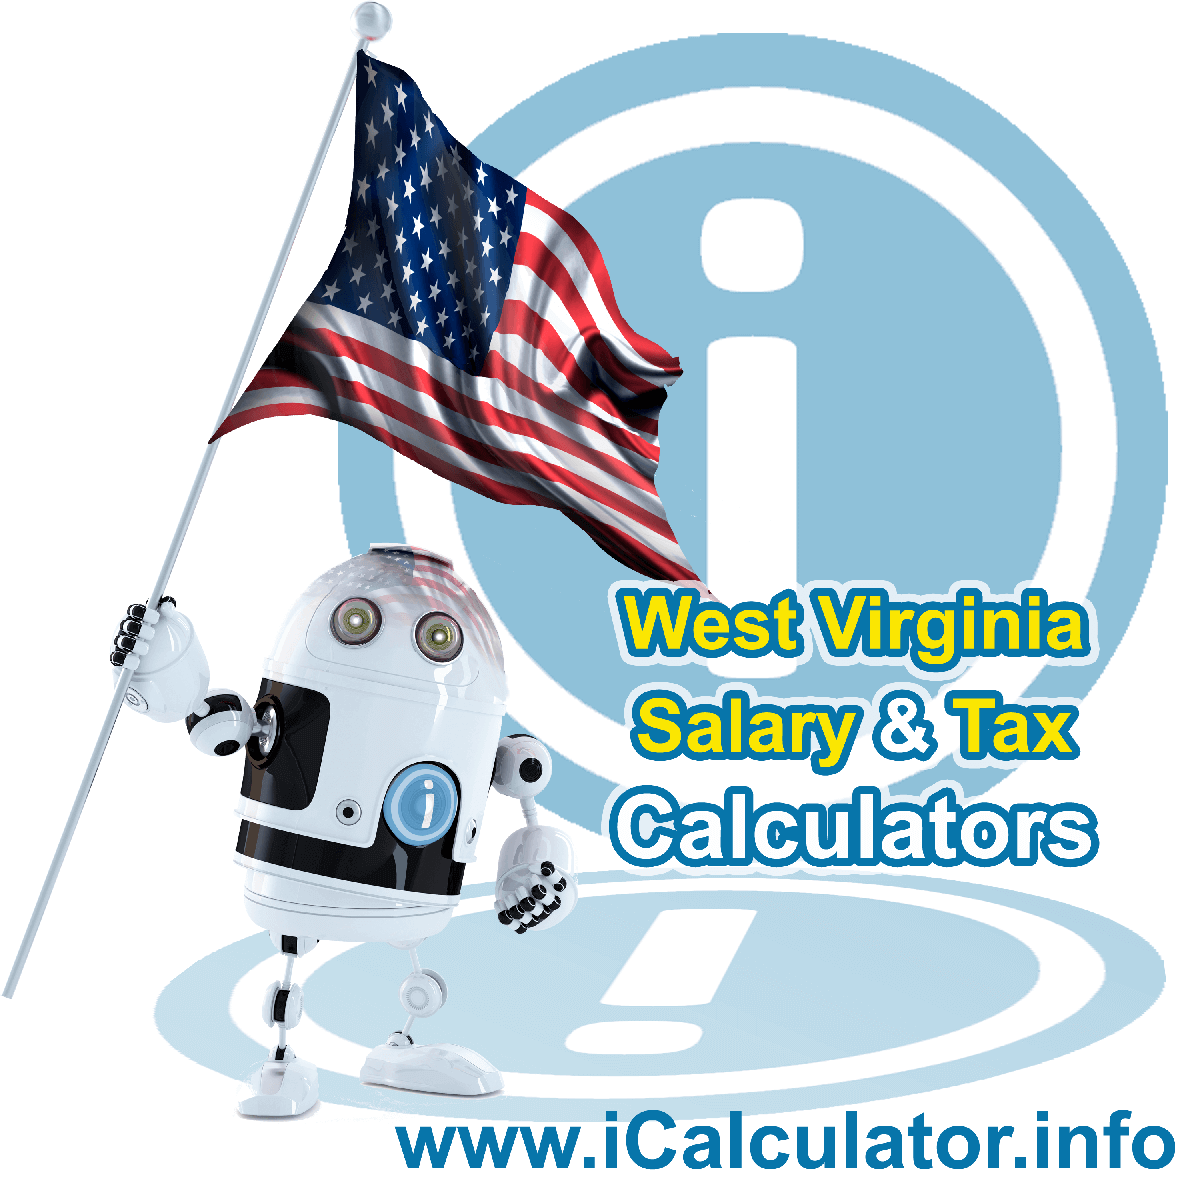 West Virginia Salary Calculator 2020 | iCalculator | The West Virginia Salary Calculator allows you to quickly calculate your salary after tax including West Virginia State Tax, Federal State Tax, Medicare Deductions, Social Security, Capital Gains and other income tax and salary deductions complete with supporting West Virginia state tax tables